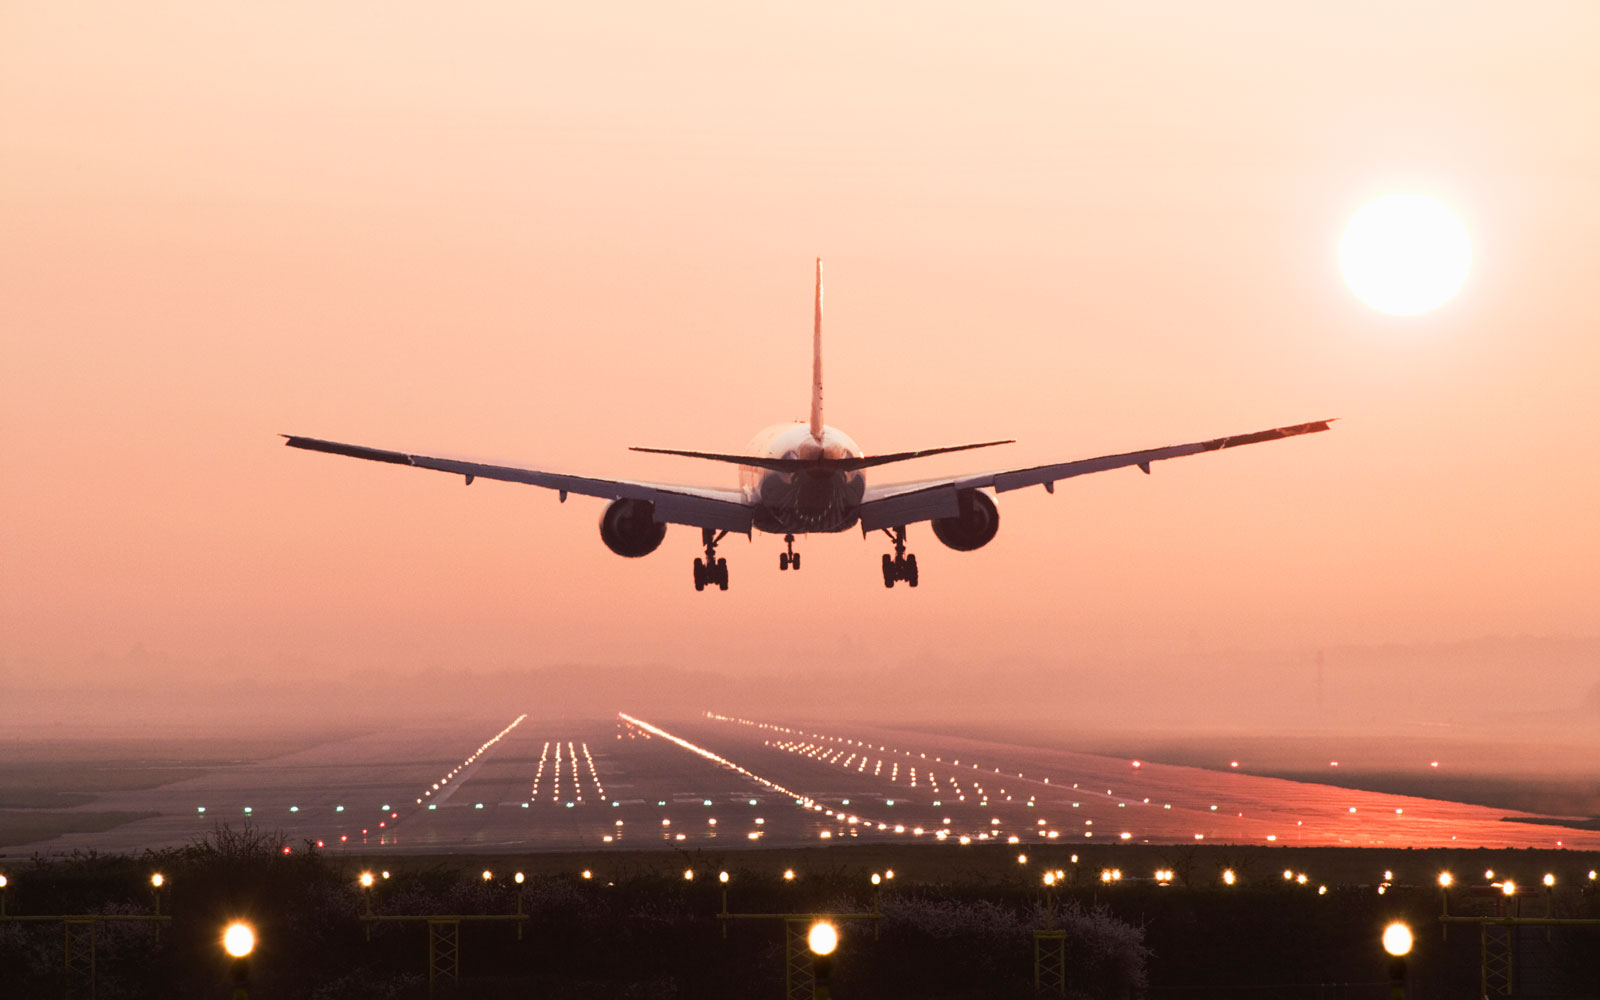 Travelers looking to take trips this fall will find some of the best savings starting on National Cheap Flight Day.